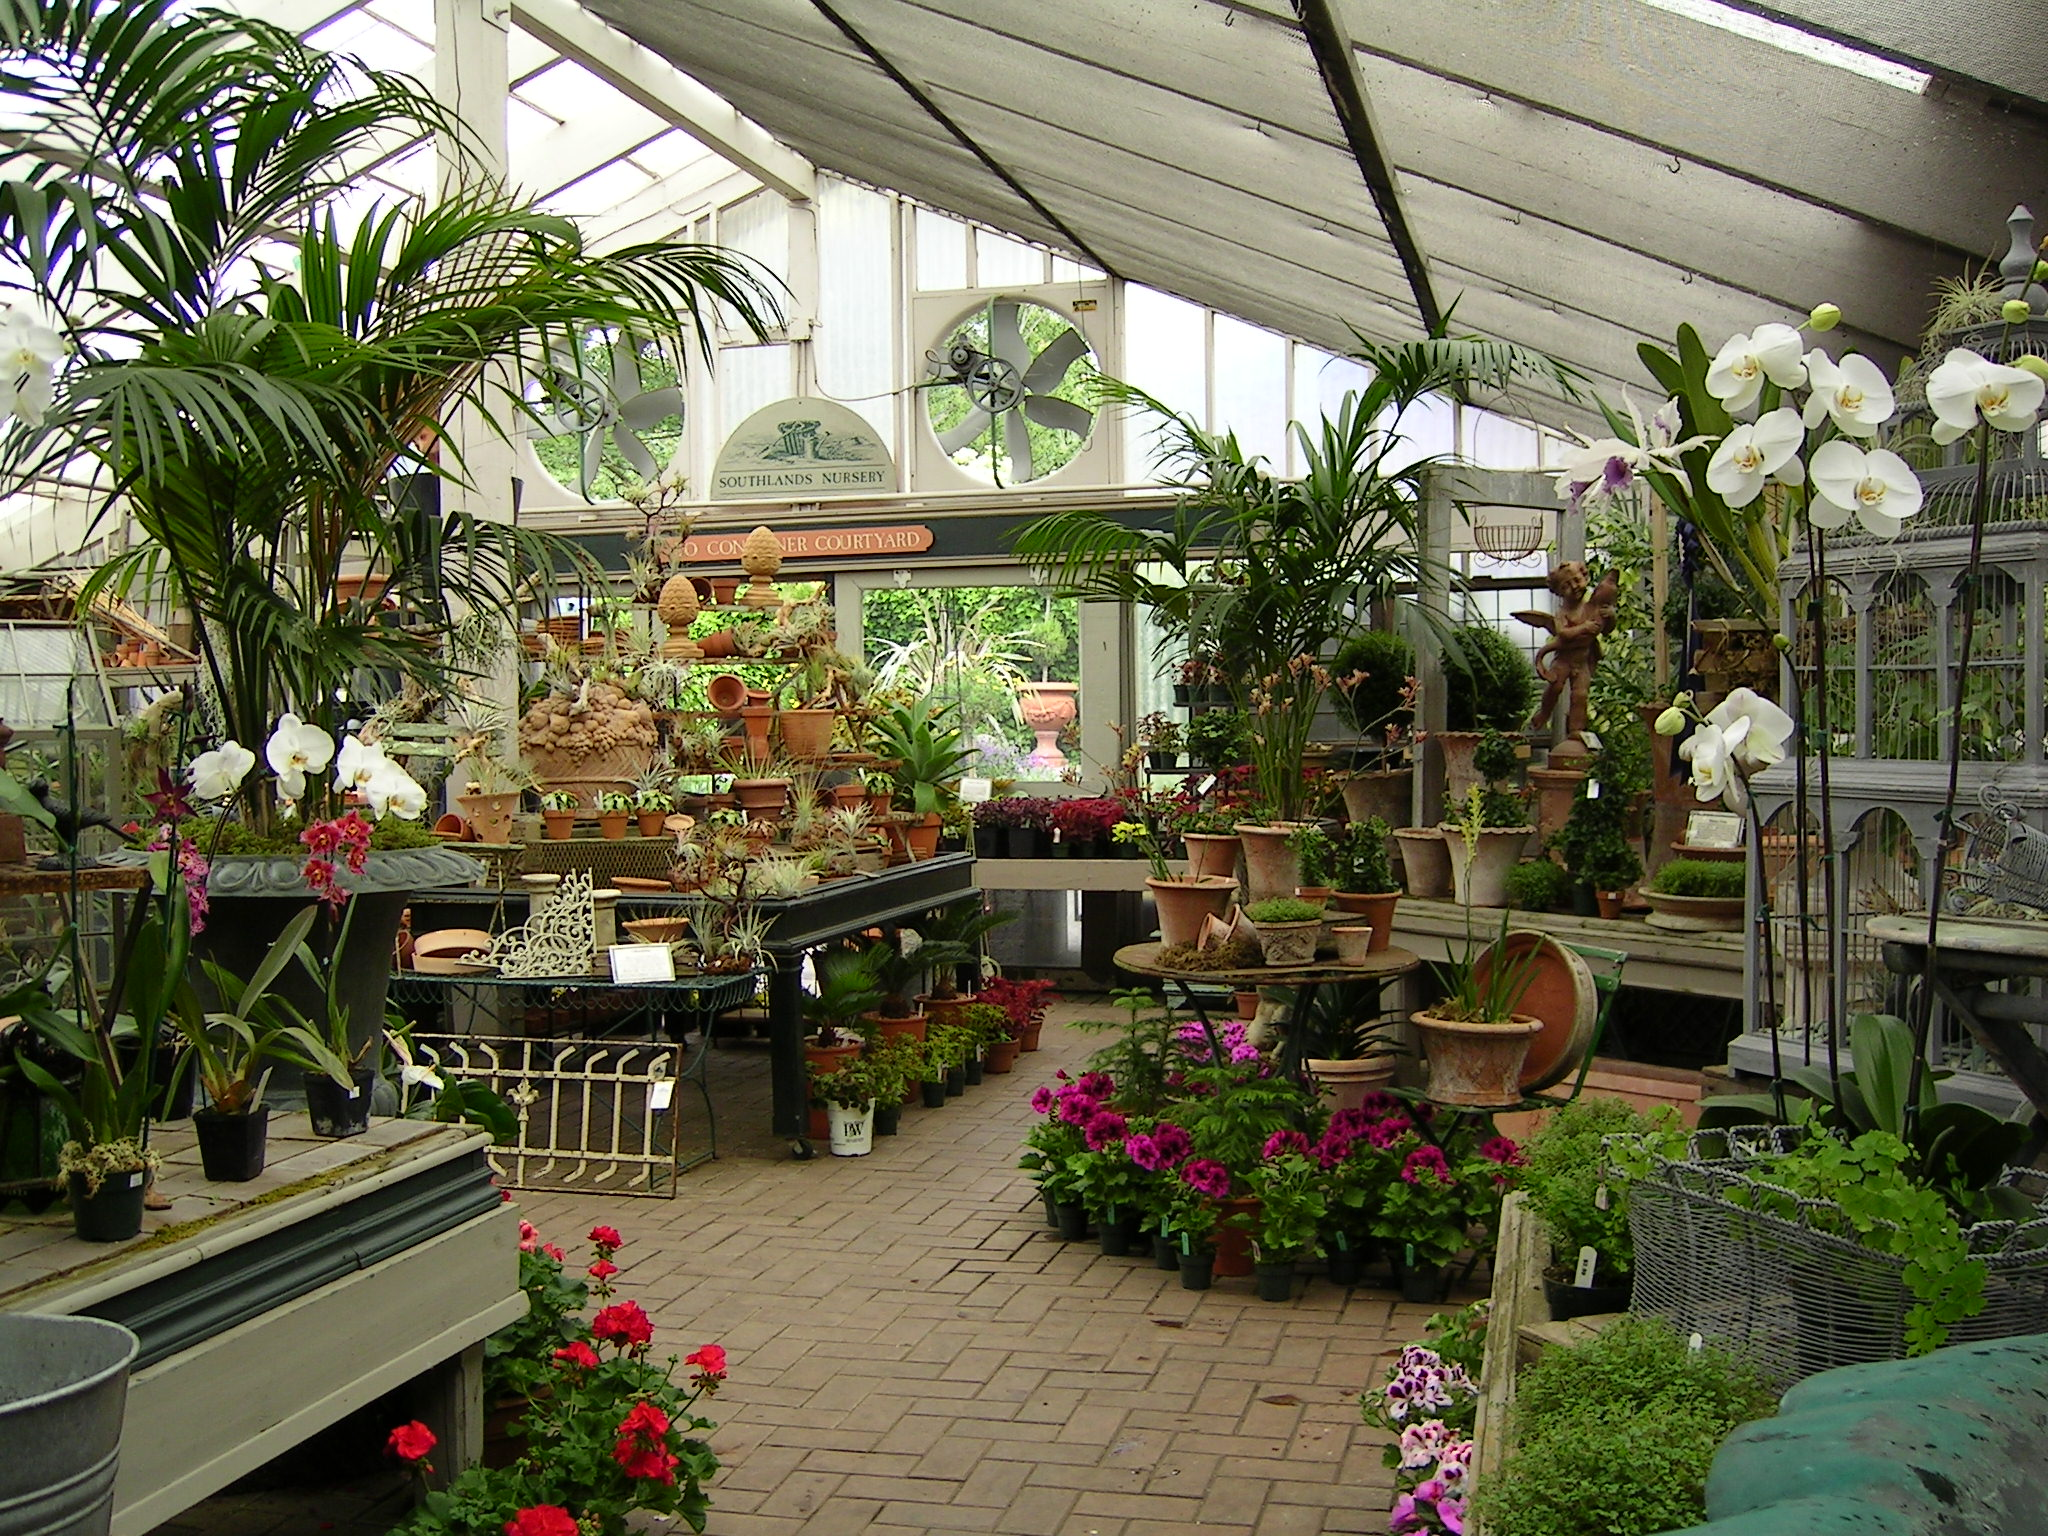 Southlands Nursery, Vancouver | HORTUS 2: There is life after retail